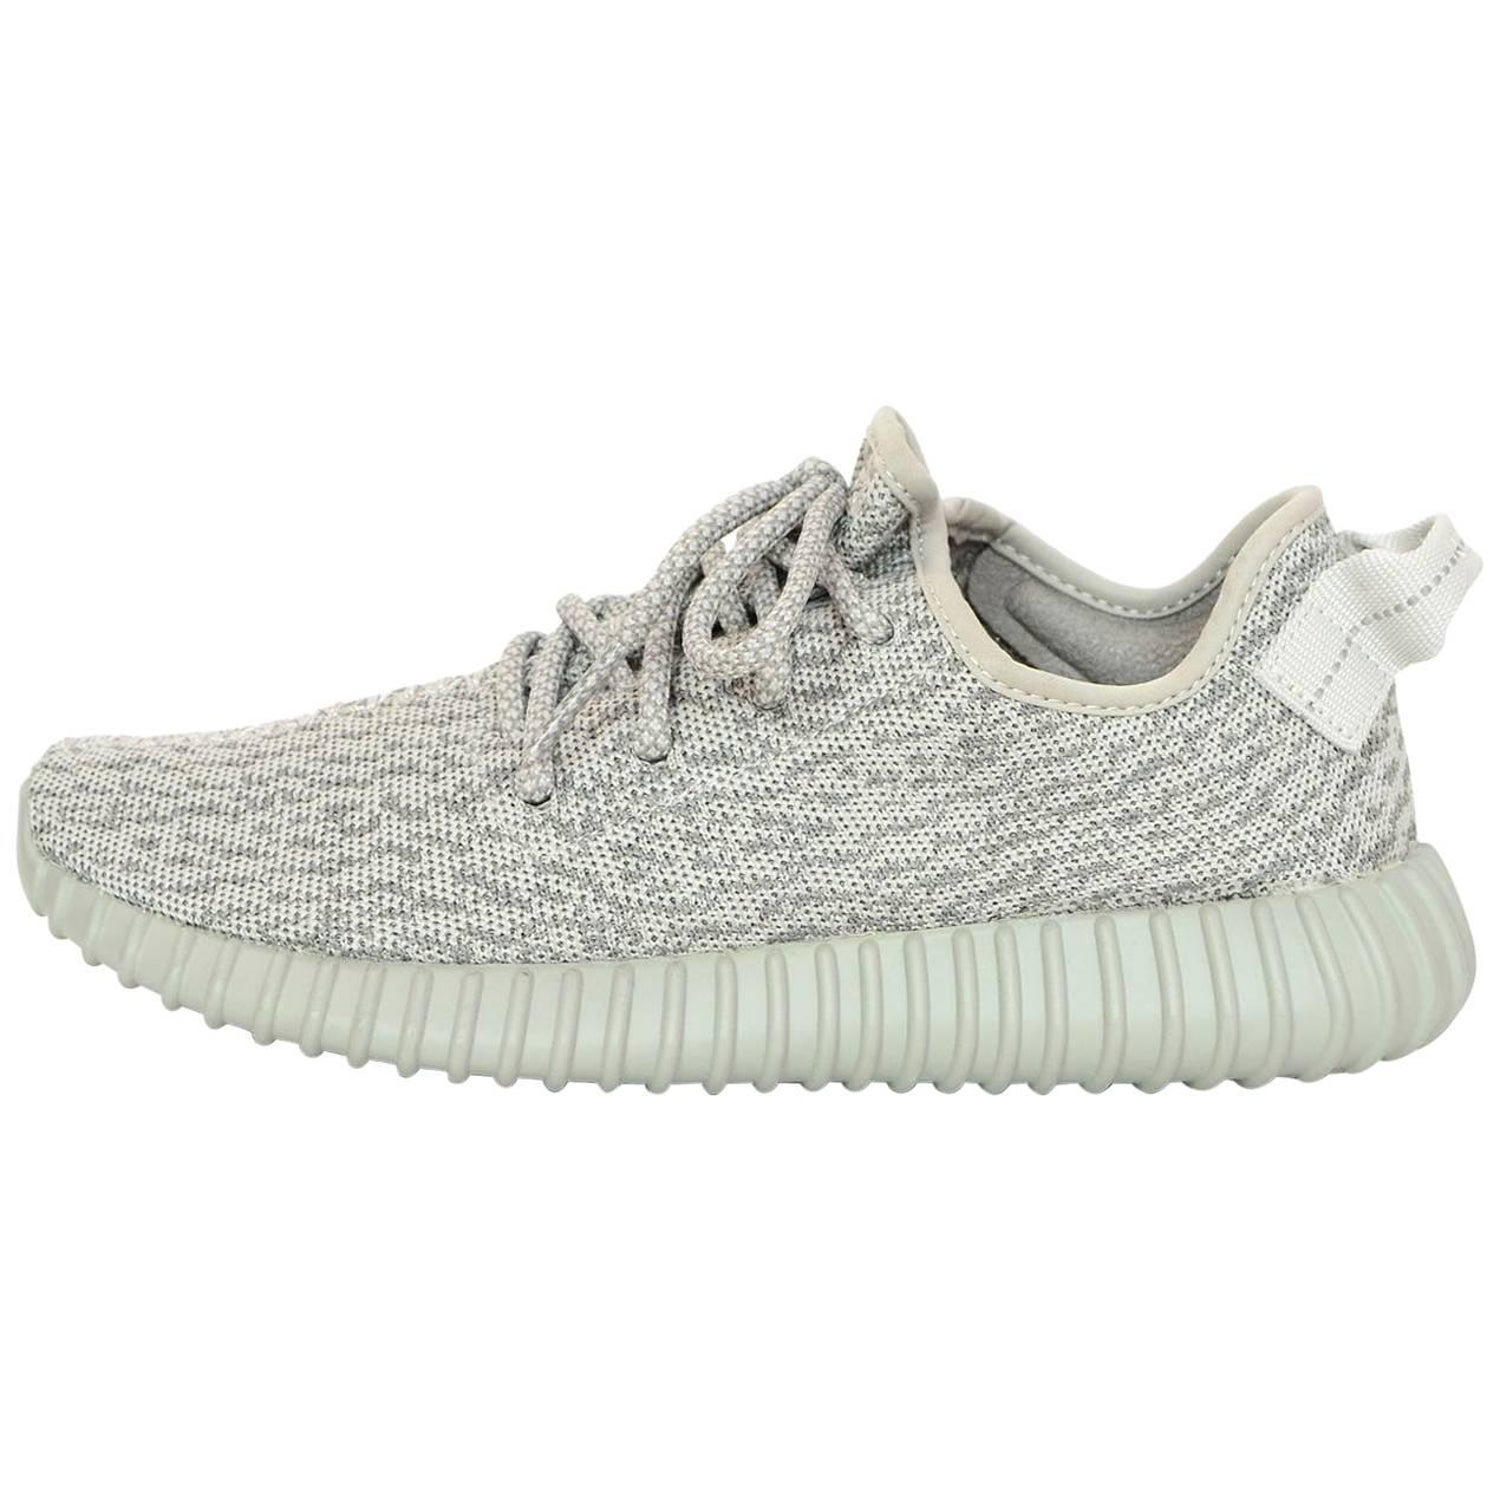 7ab0b4e8e99ff Adidas x Kanye West Yeezy Boost 350 Moonrock Sneakers Men s 6.5  Women s  7.5 at 1stdibs